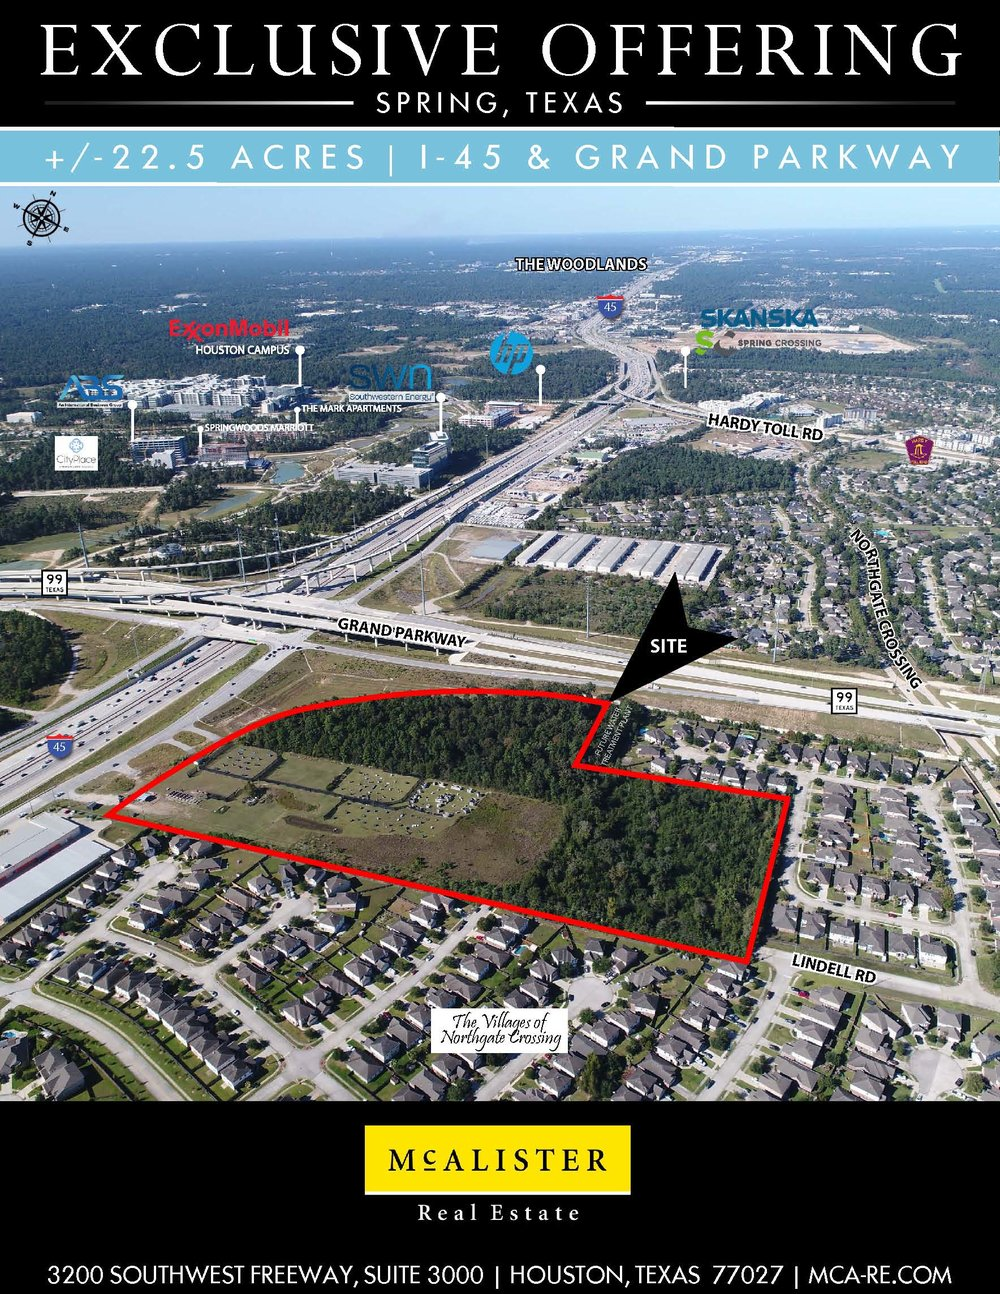 +/- 22.5 Acres Grand Parkway & i-45